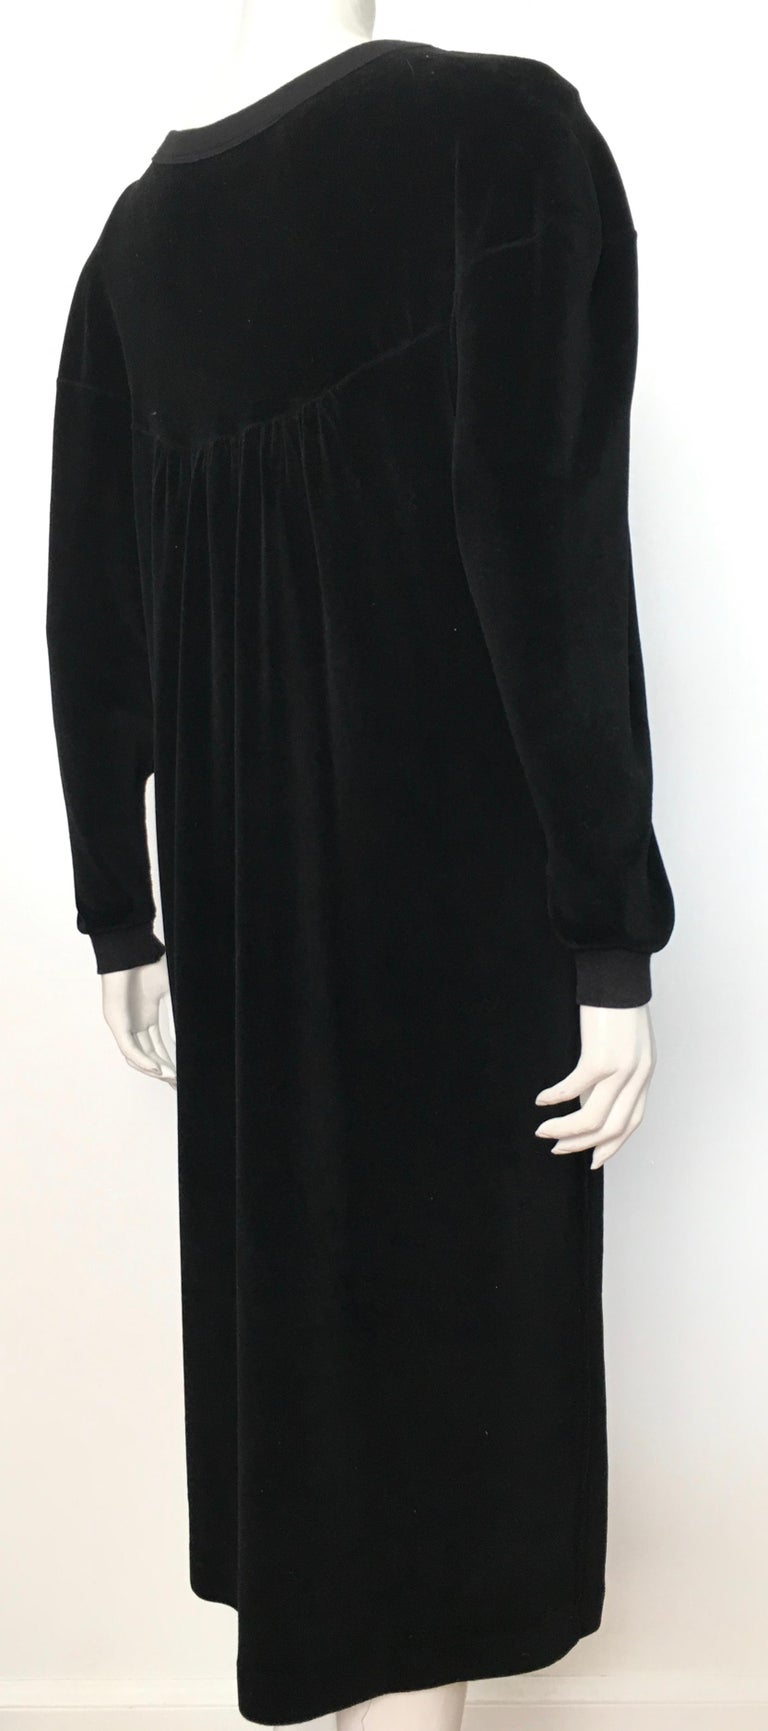 Sonia Rykiel 1980s Black Velour Dress with Pockets & Cardigan Size Large. For Sale 4